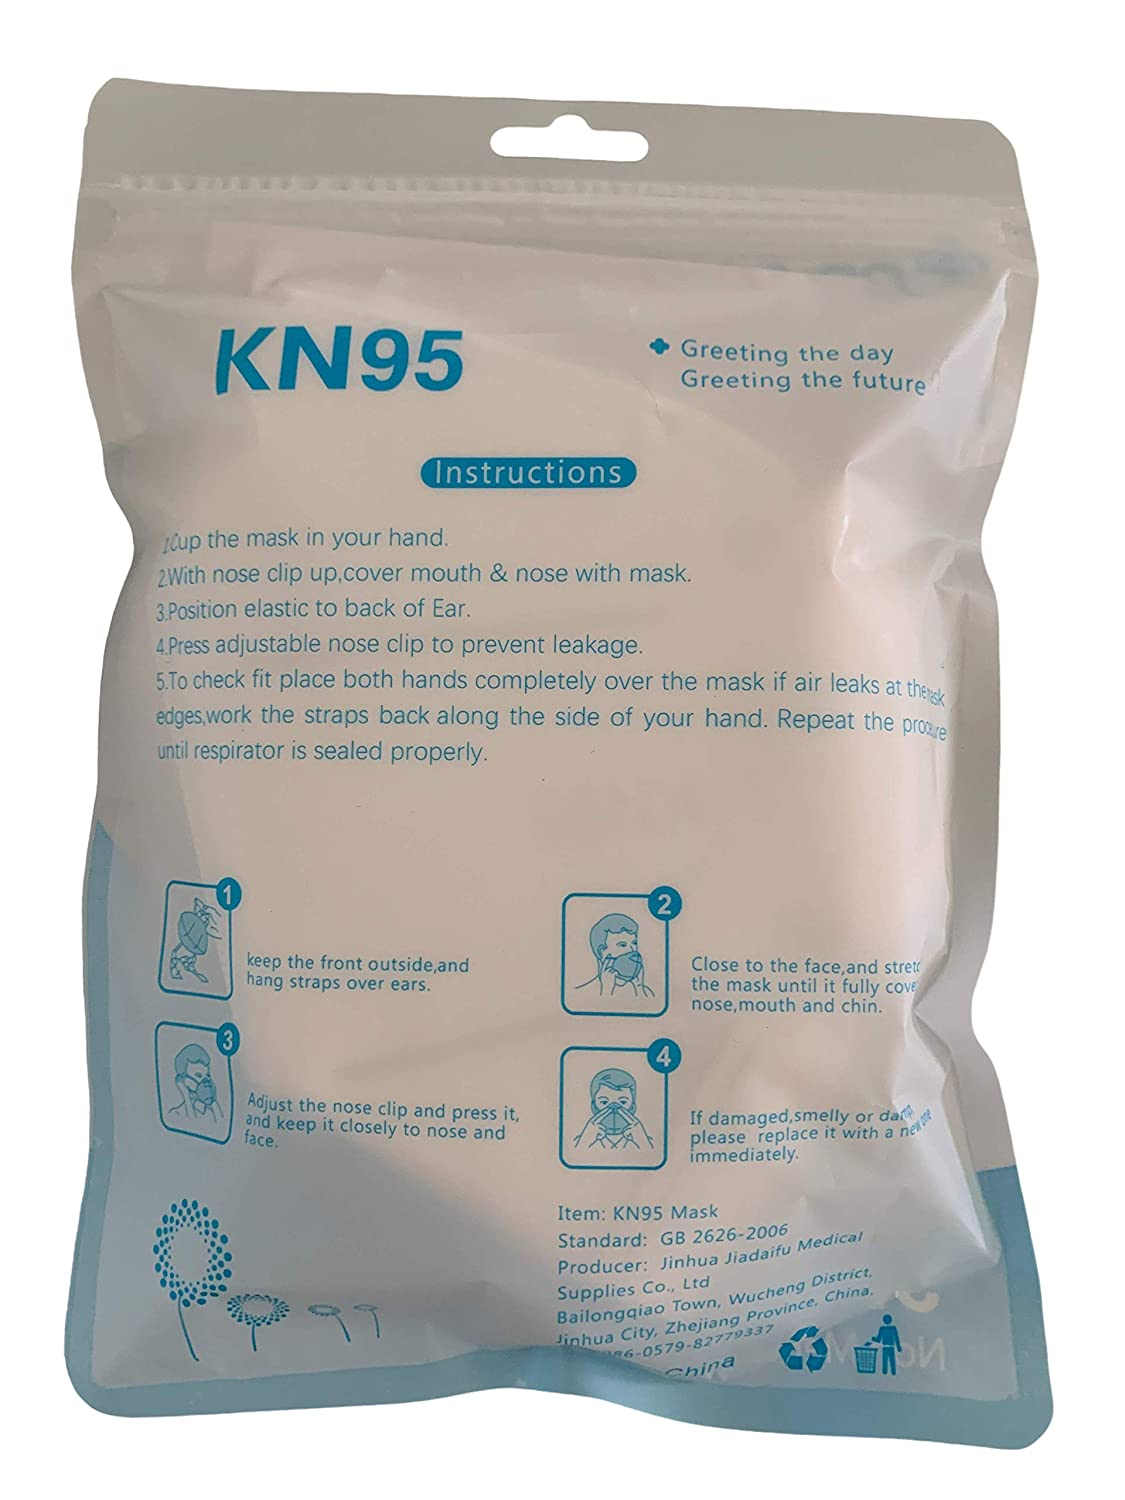 Disposable KN95 Face Masks, Non-Woven 5-Layer Disposable Mask, Elastic Ear  Loops, Adjustable Nose Wire, Light Weight, Perfect for Office, 5 Units/Bag:  Amazon.com: Industrial & Scientific